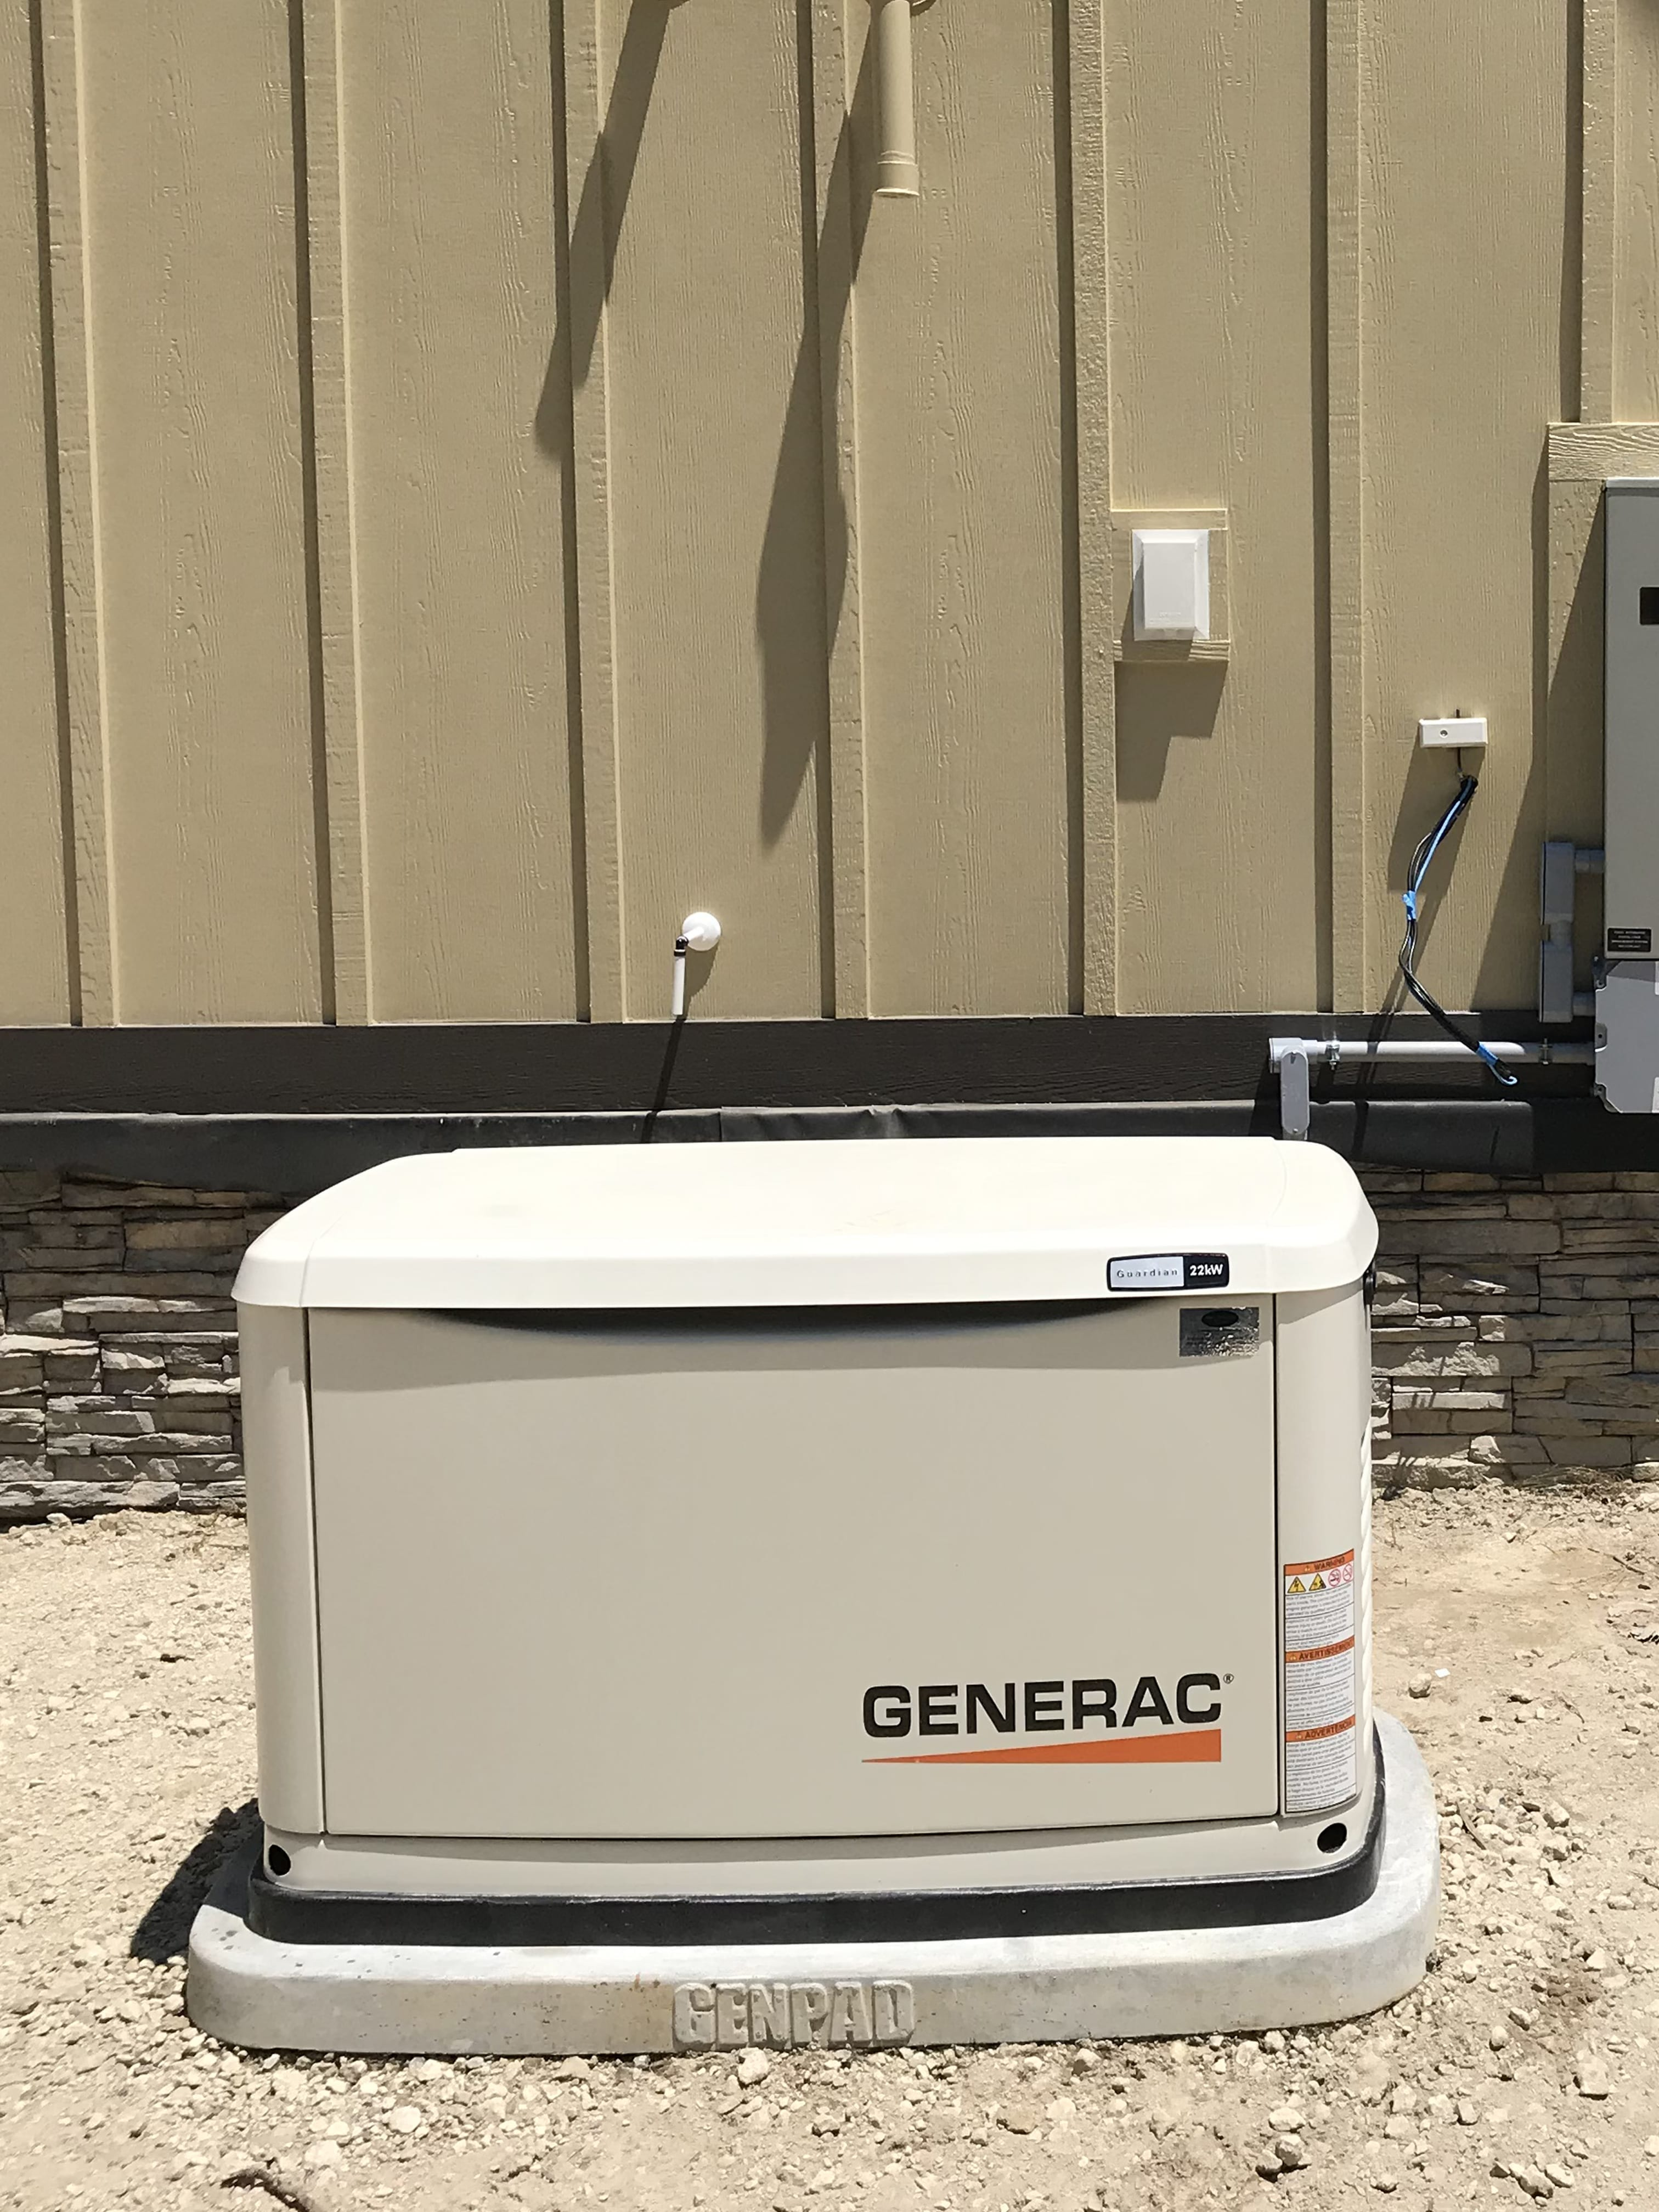 7.3.19 Prince George Generac Automatic Standby Generator